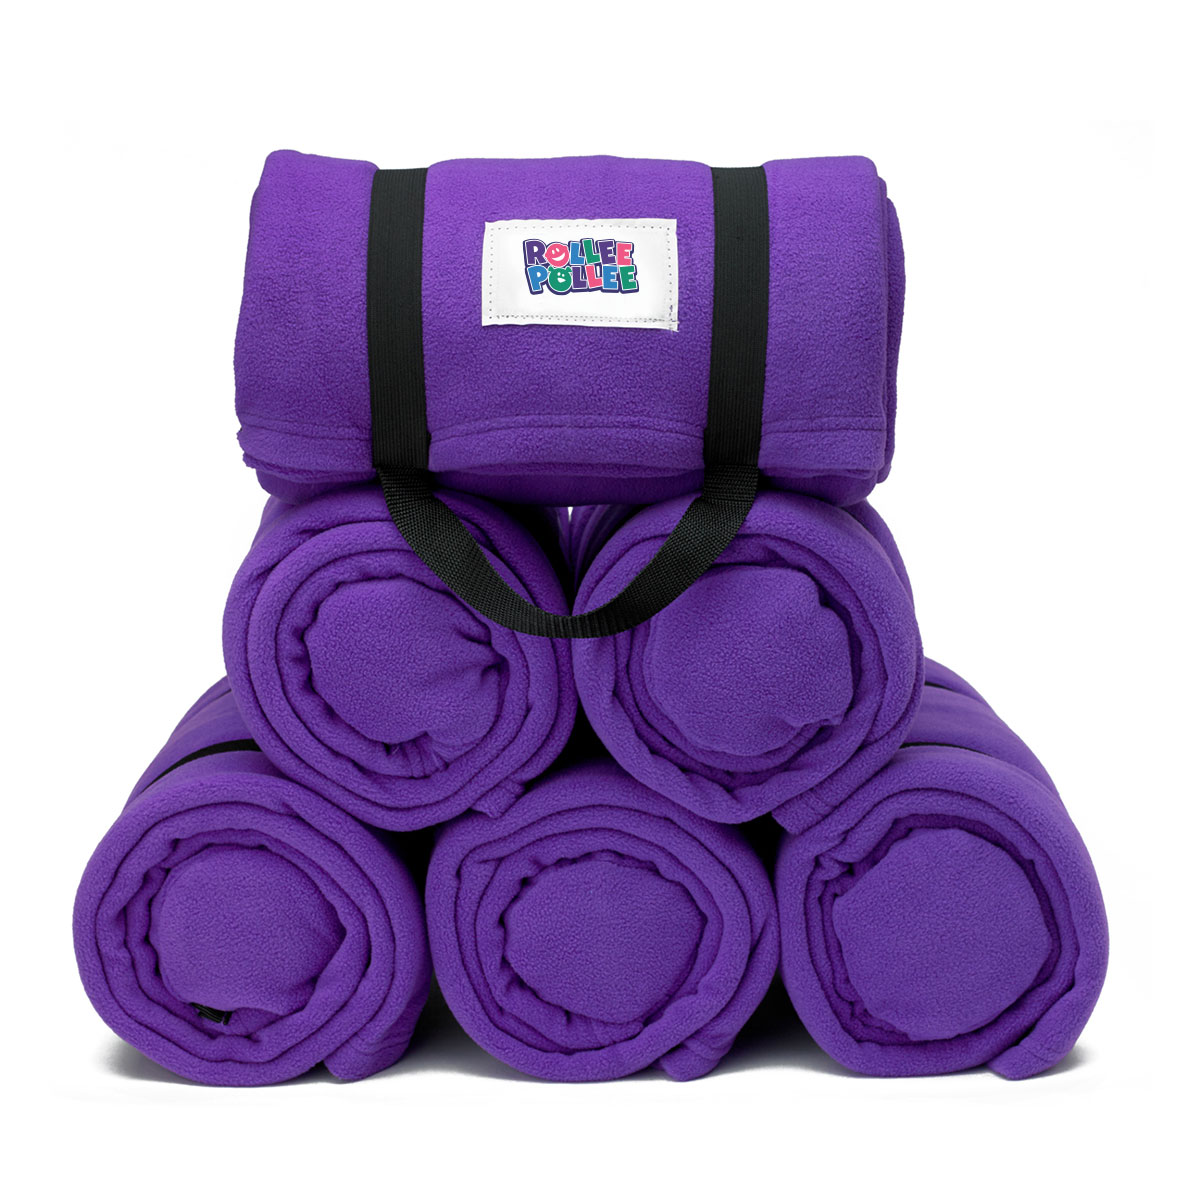 Rollee Pollee Nap Sac 6 Pack Purple Nap Mat Cover Pillow